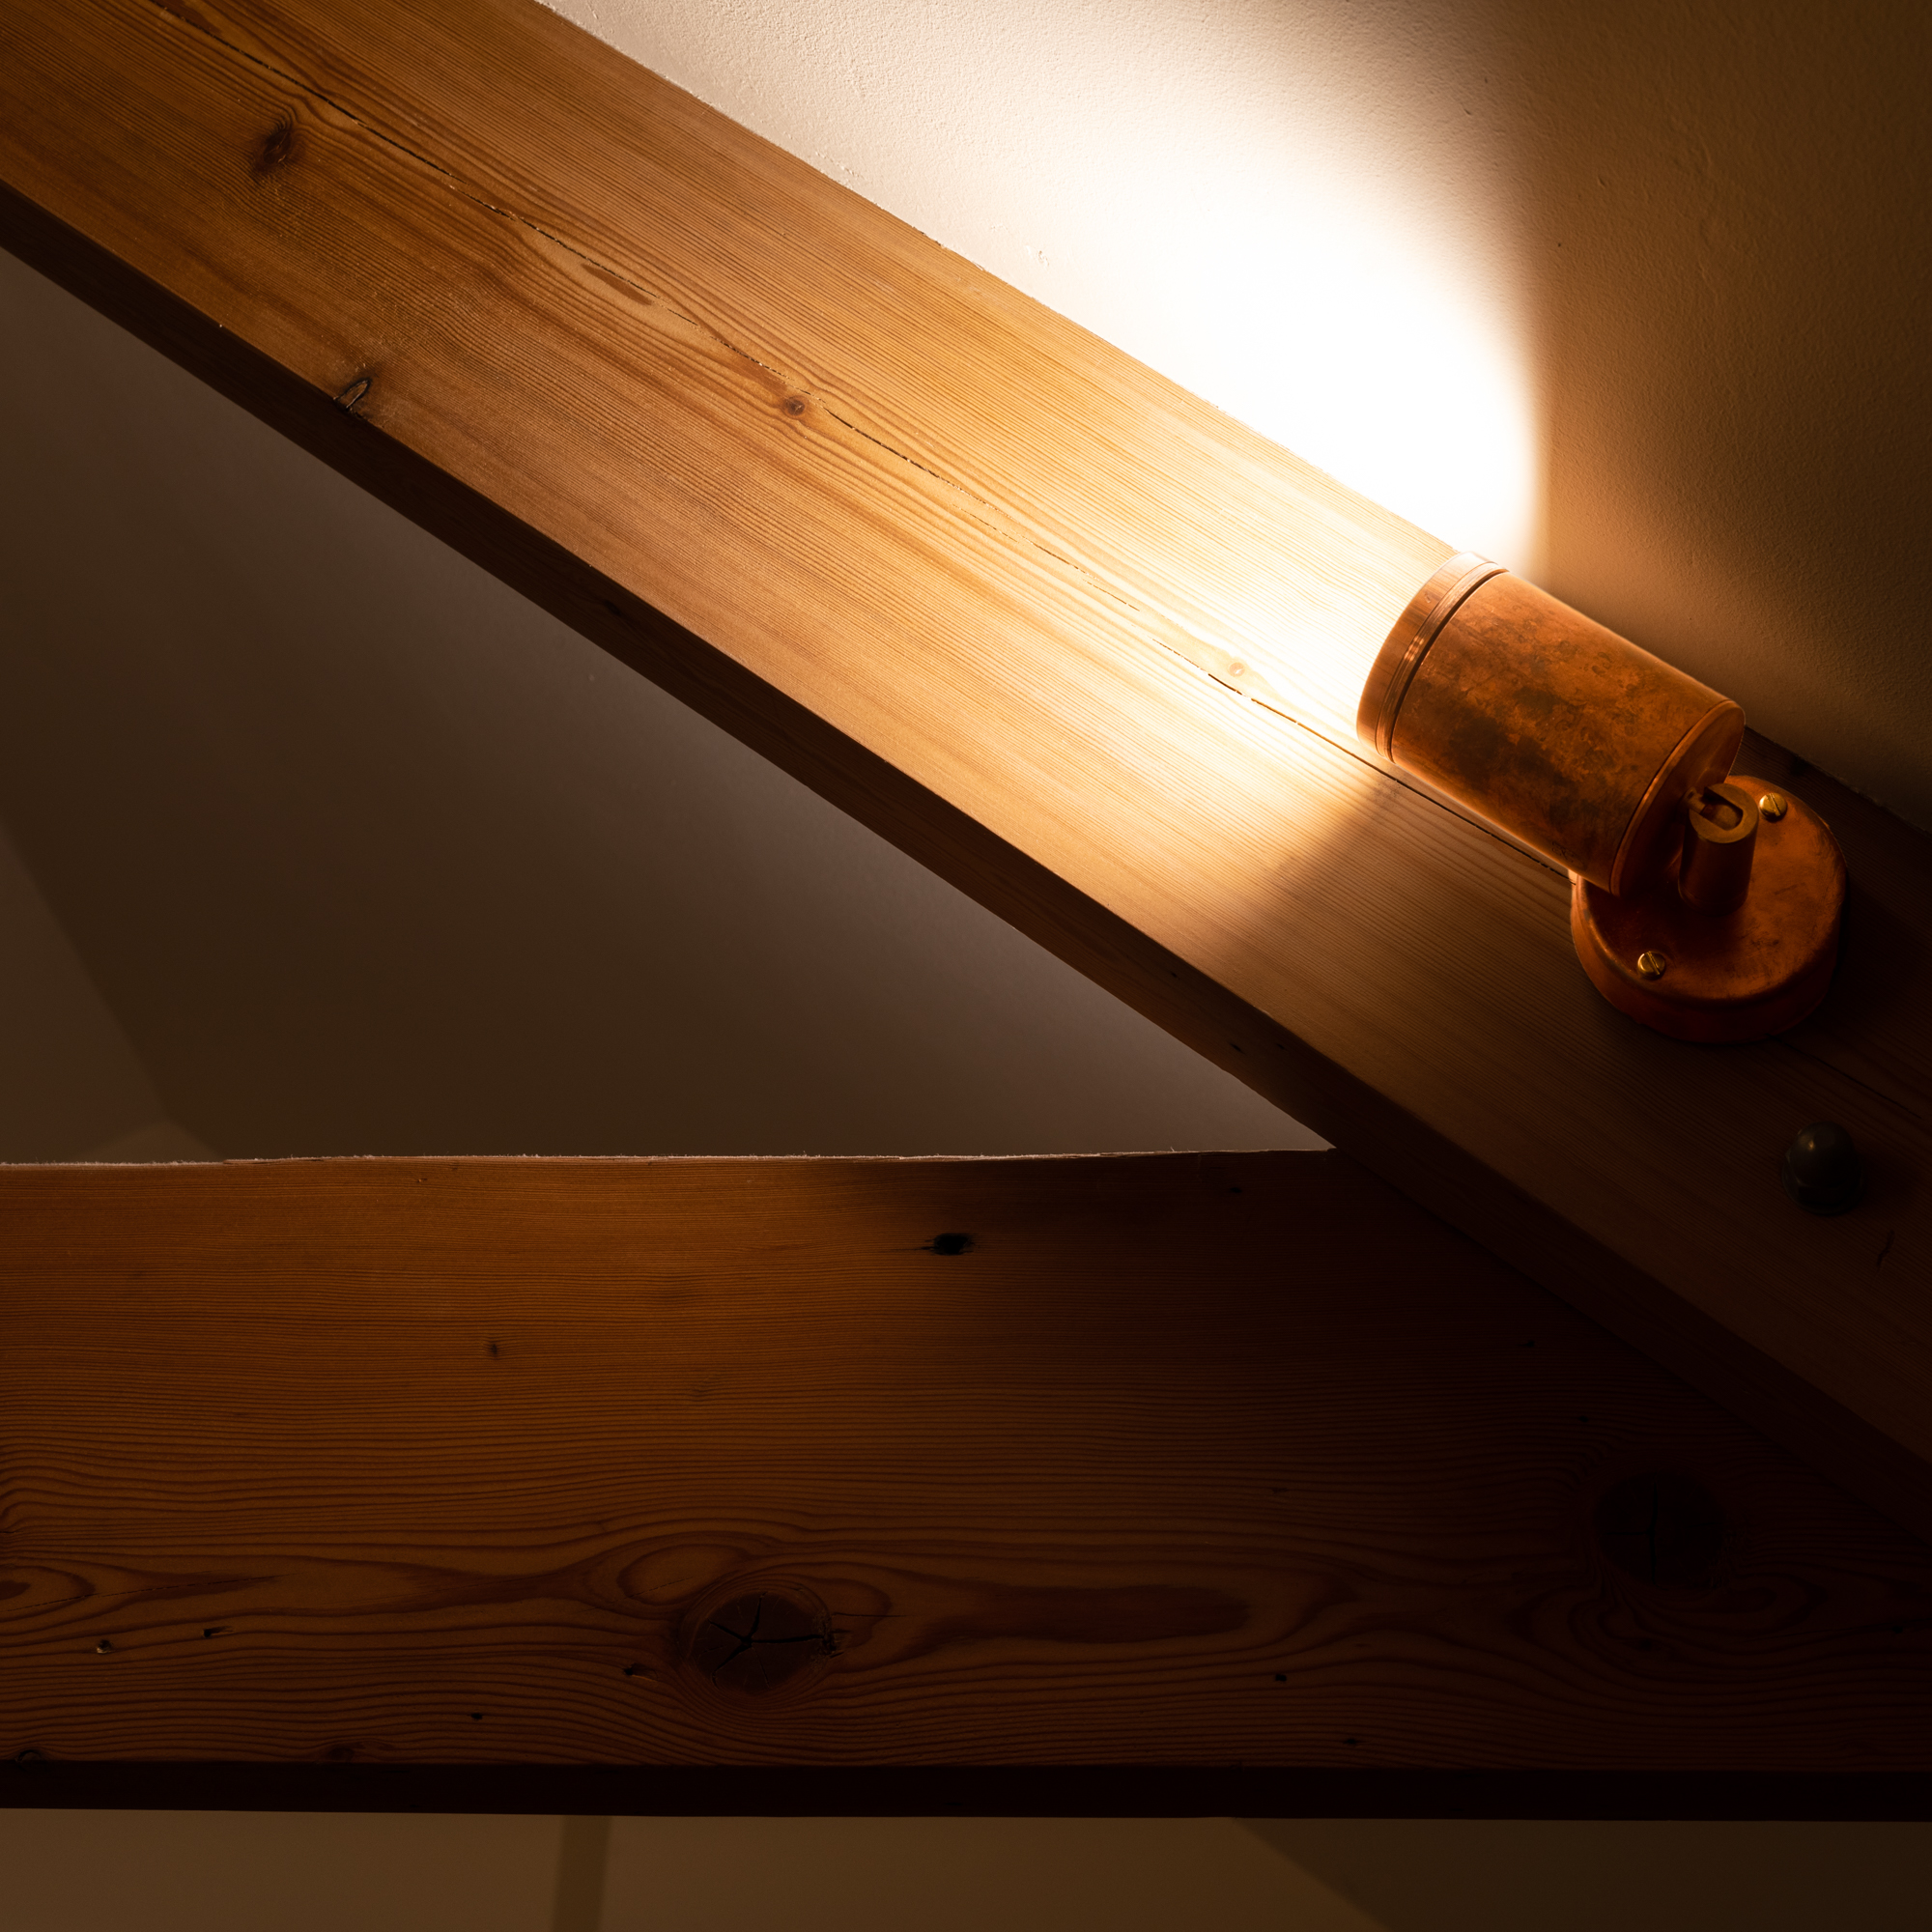 eleanor-bell-resdiential-lighting-cornwall-beam-uplight.jpg